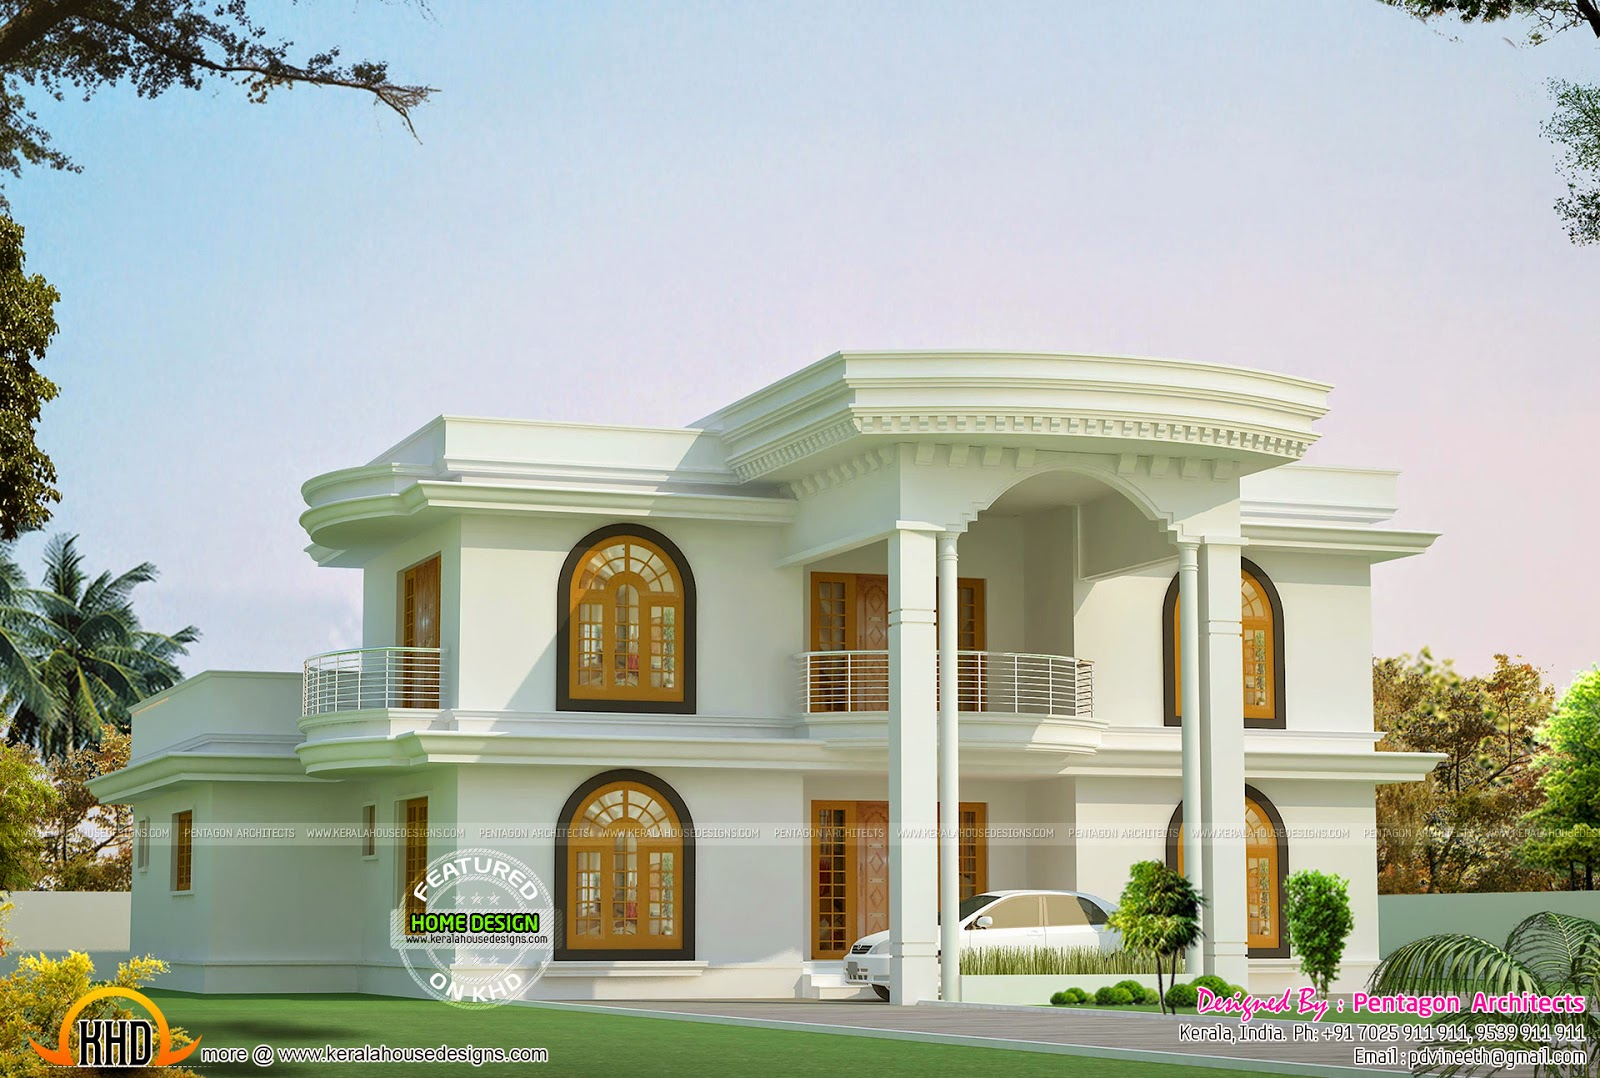 Kerala house plans set part 2 kerala home design and for Kerala house models and plans